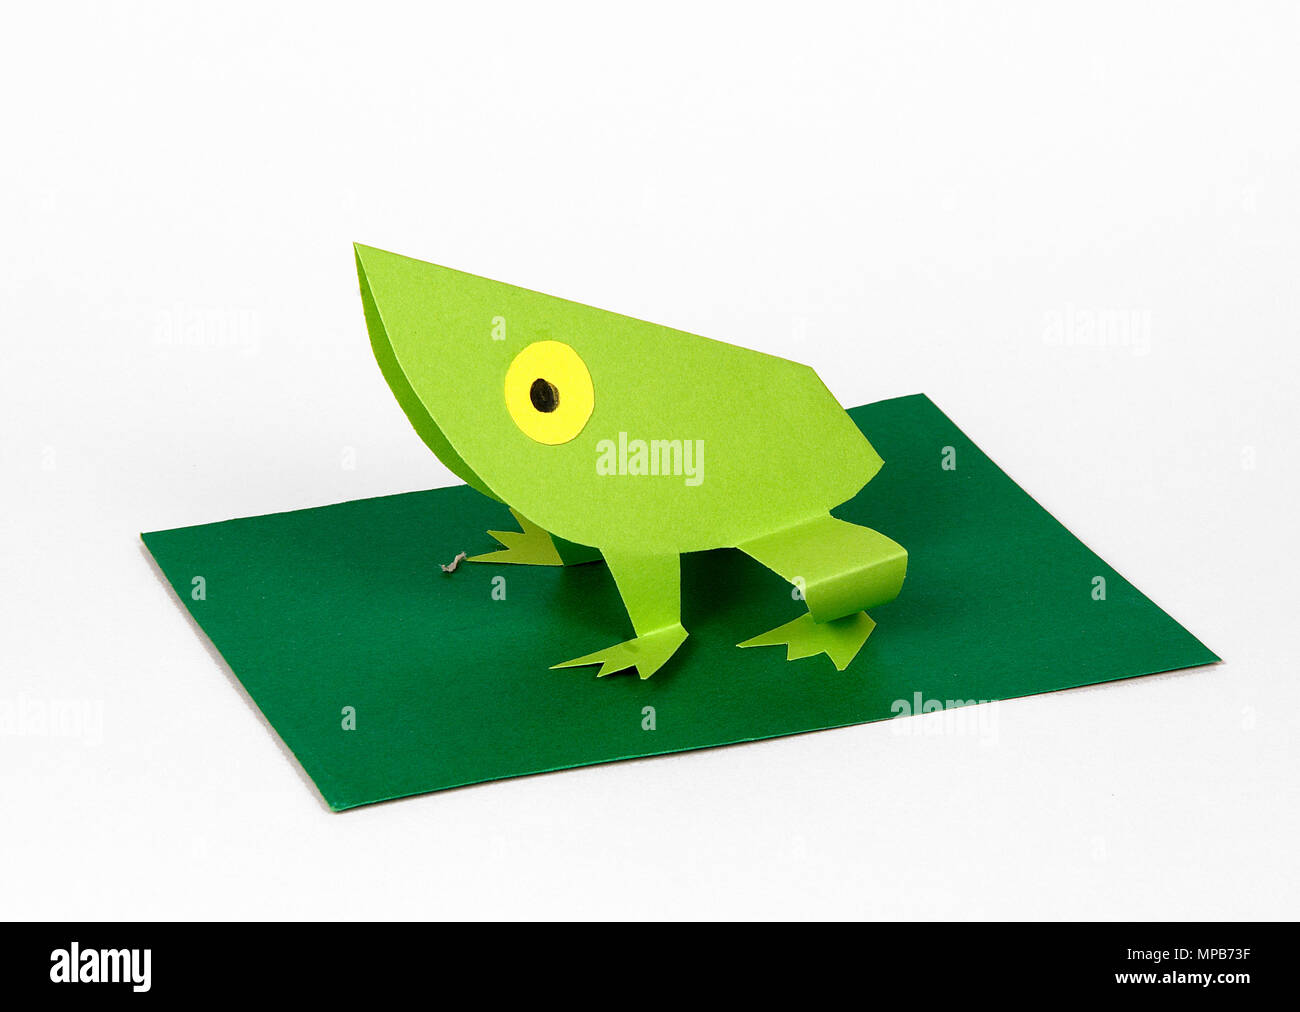 Origami Amphibians - Page 1 of 4 | Gilad's Origami Page | 1012x1300